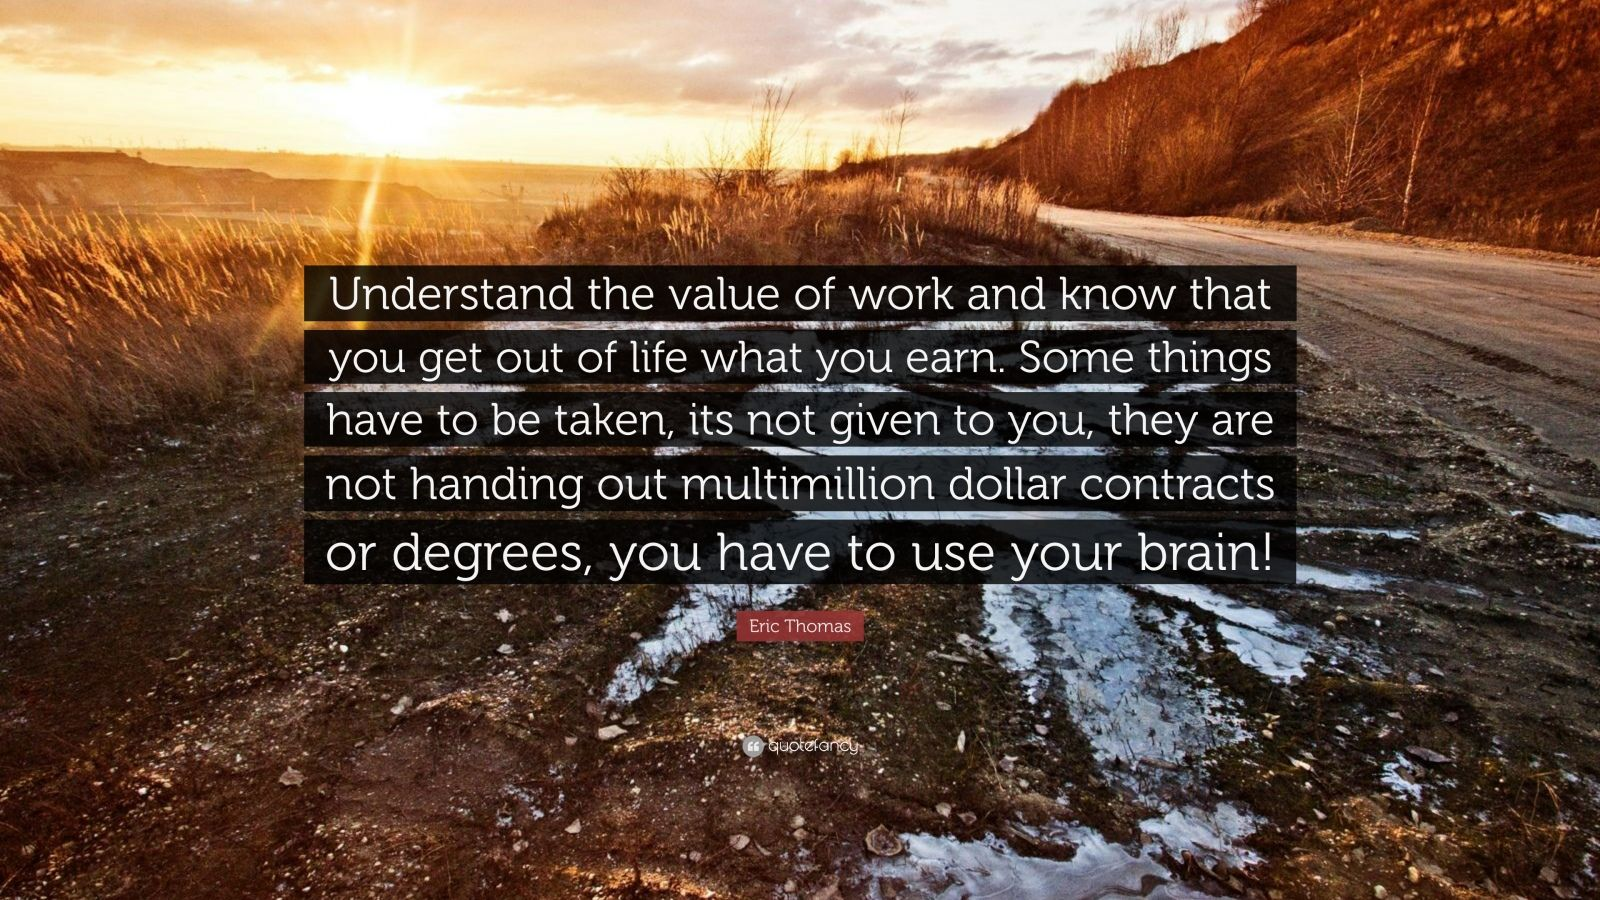 "Eric Thomas Quote: ""Understand the value of work and know that you get out of life what you earn. Some things have to be taken, its not given to you, they are not handing out multimillion dollar contracts or degrees, you have to use your brain!"""